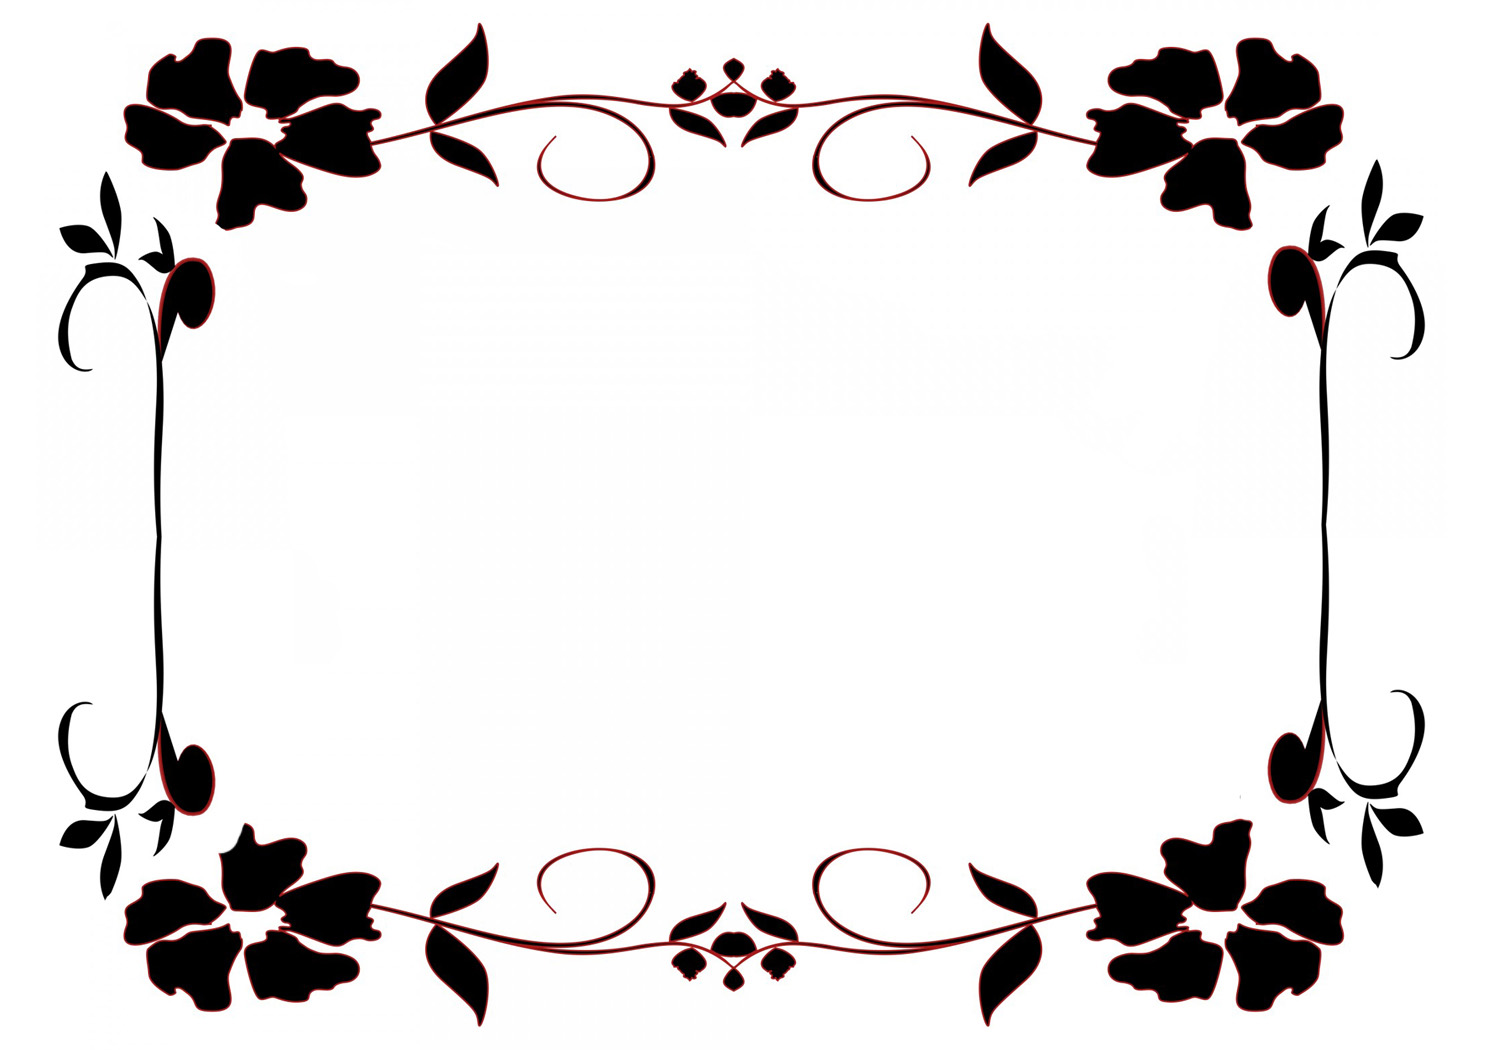 Flower borders and frames.